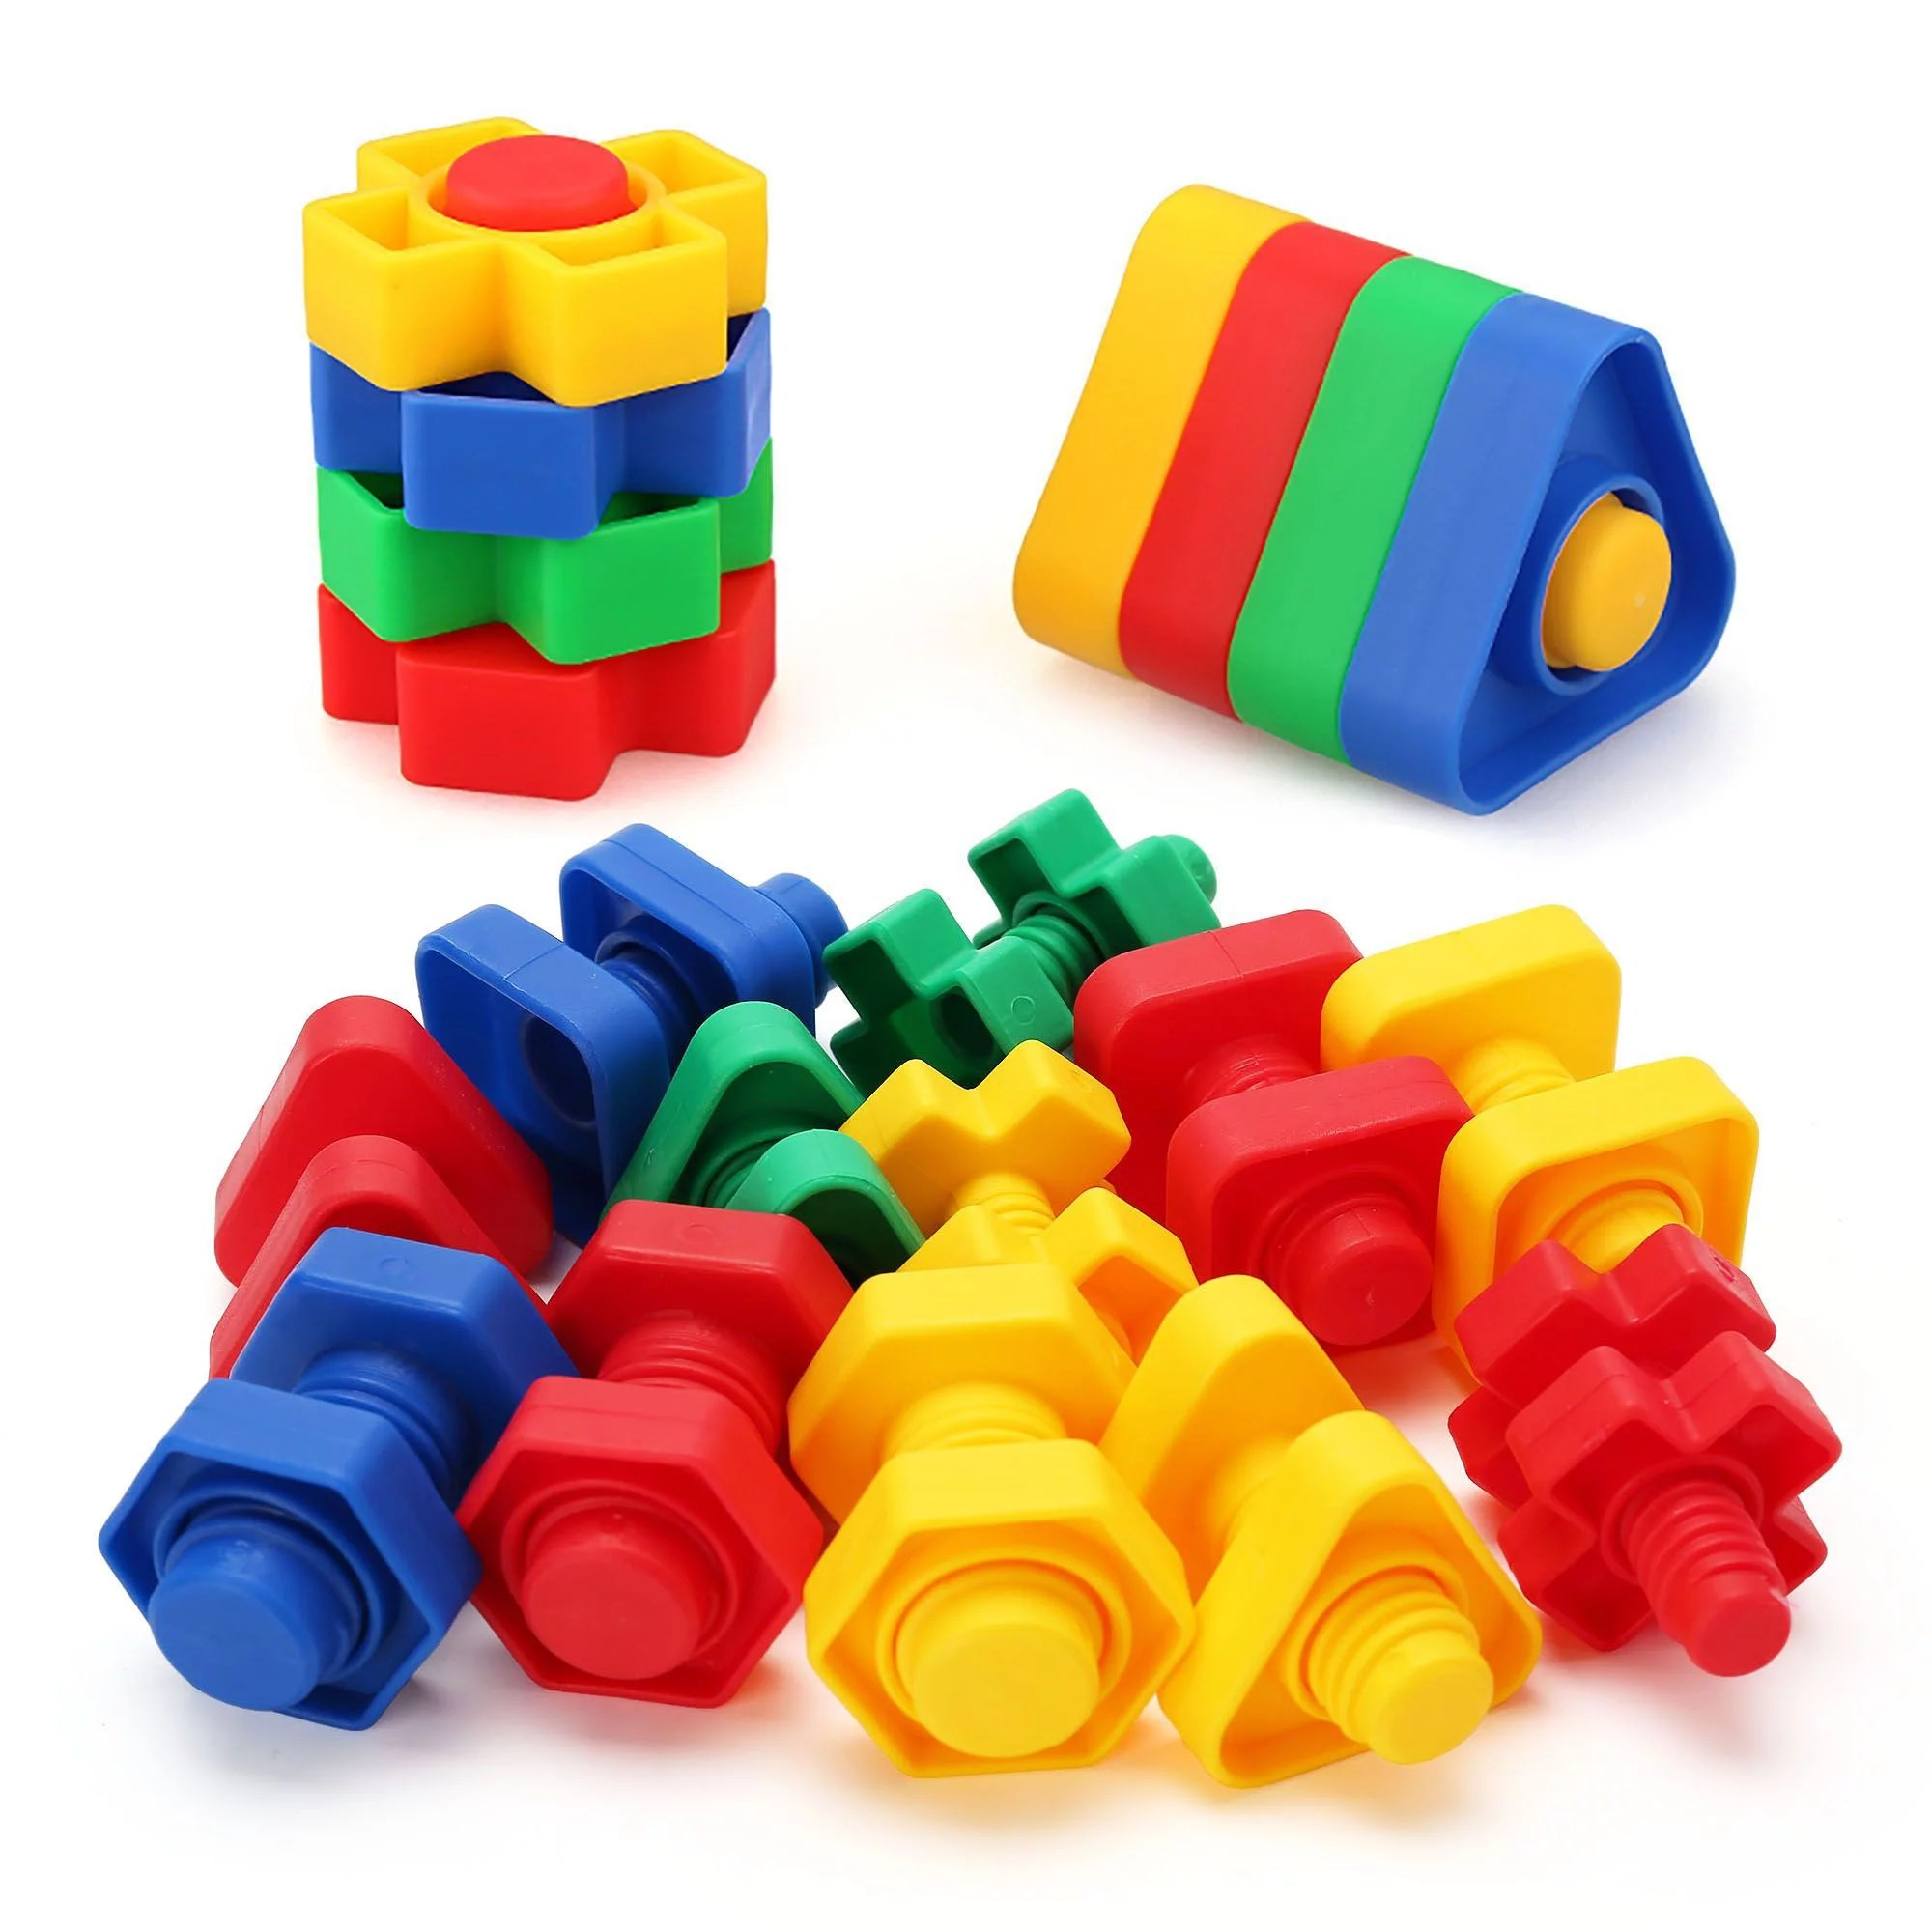 Jumbo Nuts And Bolts Toys For Toddler Kids Girls Boy